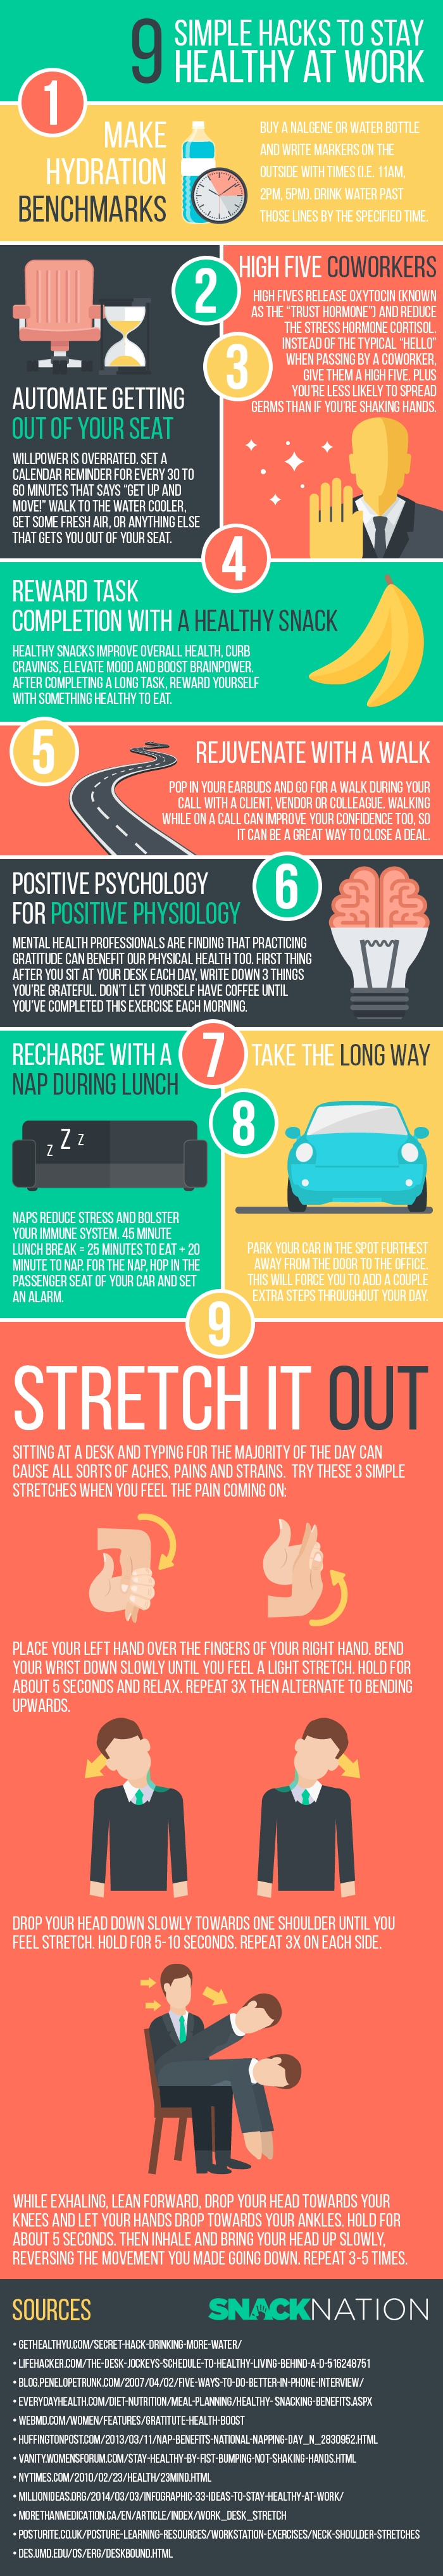 9-simple-hacks-to-stay-healthy-at-work-infographic-min